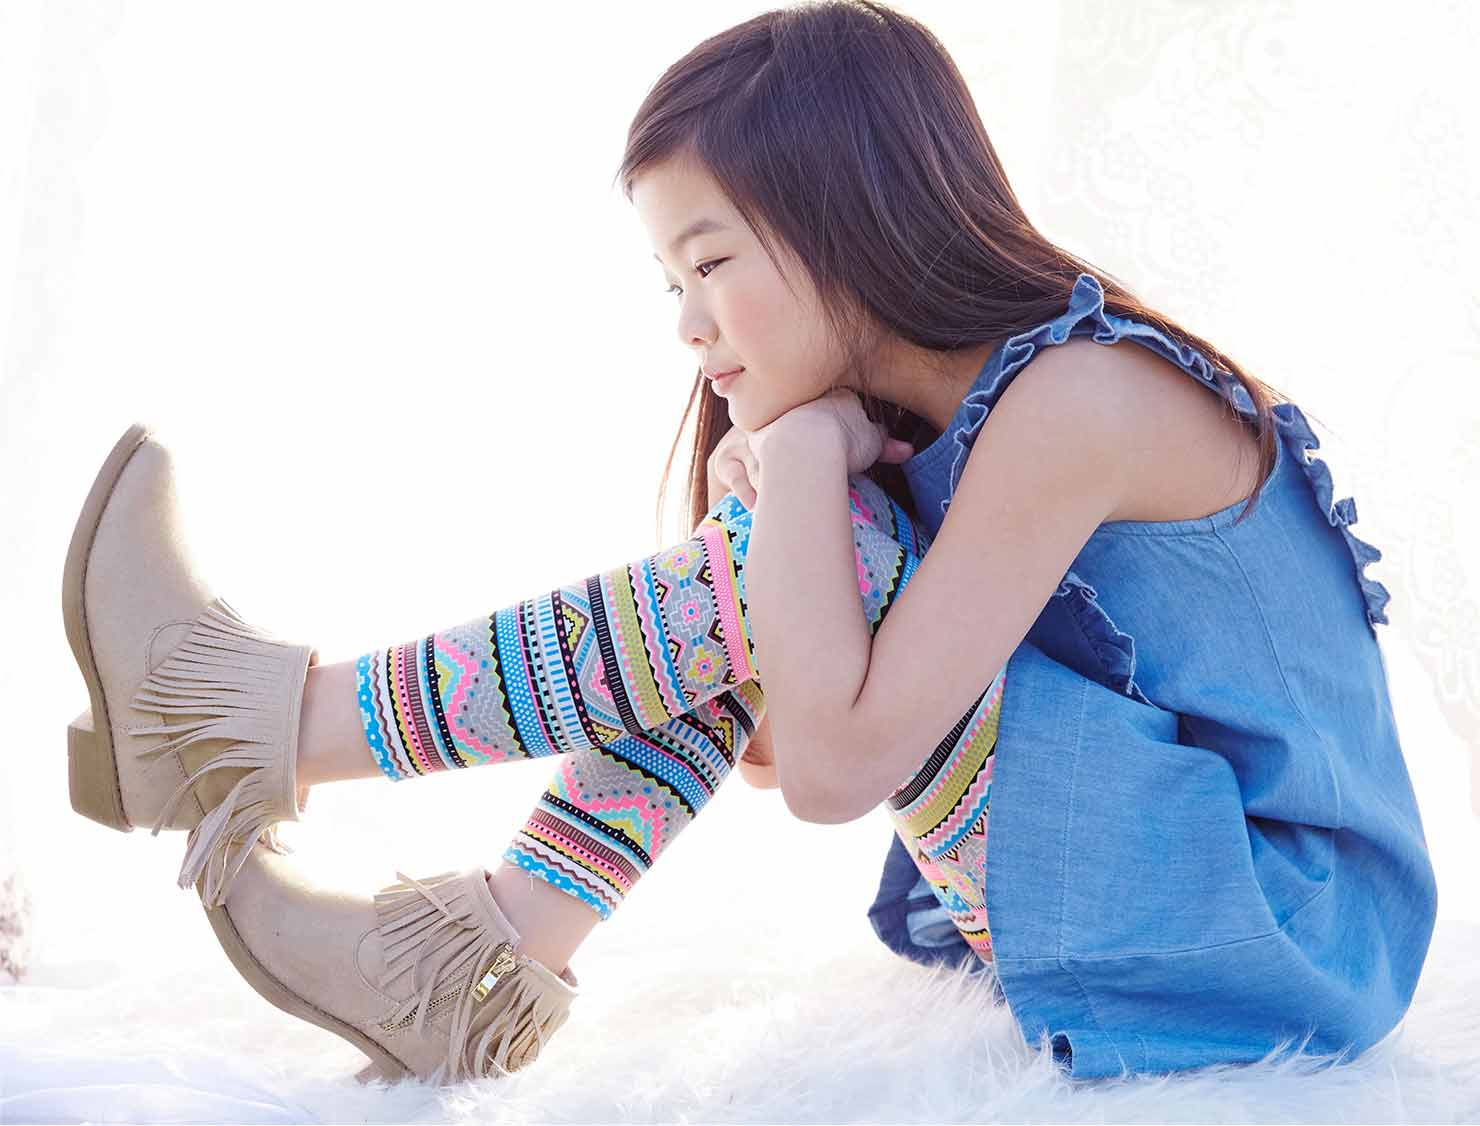 Photo of child in trendy clothing and shoes